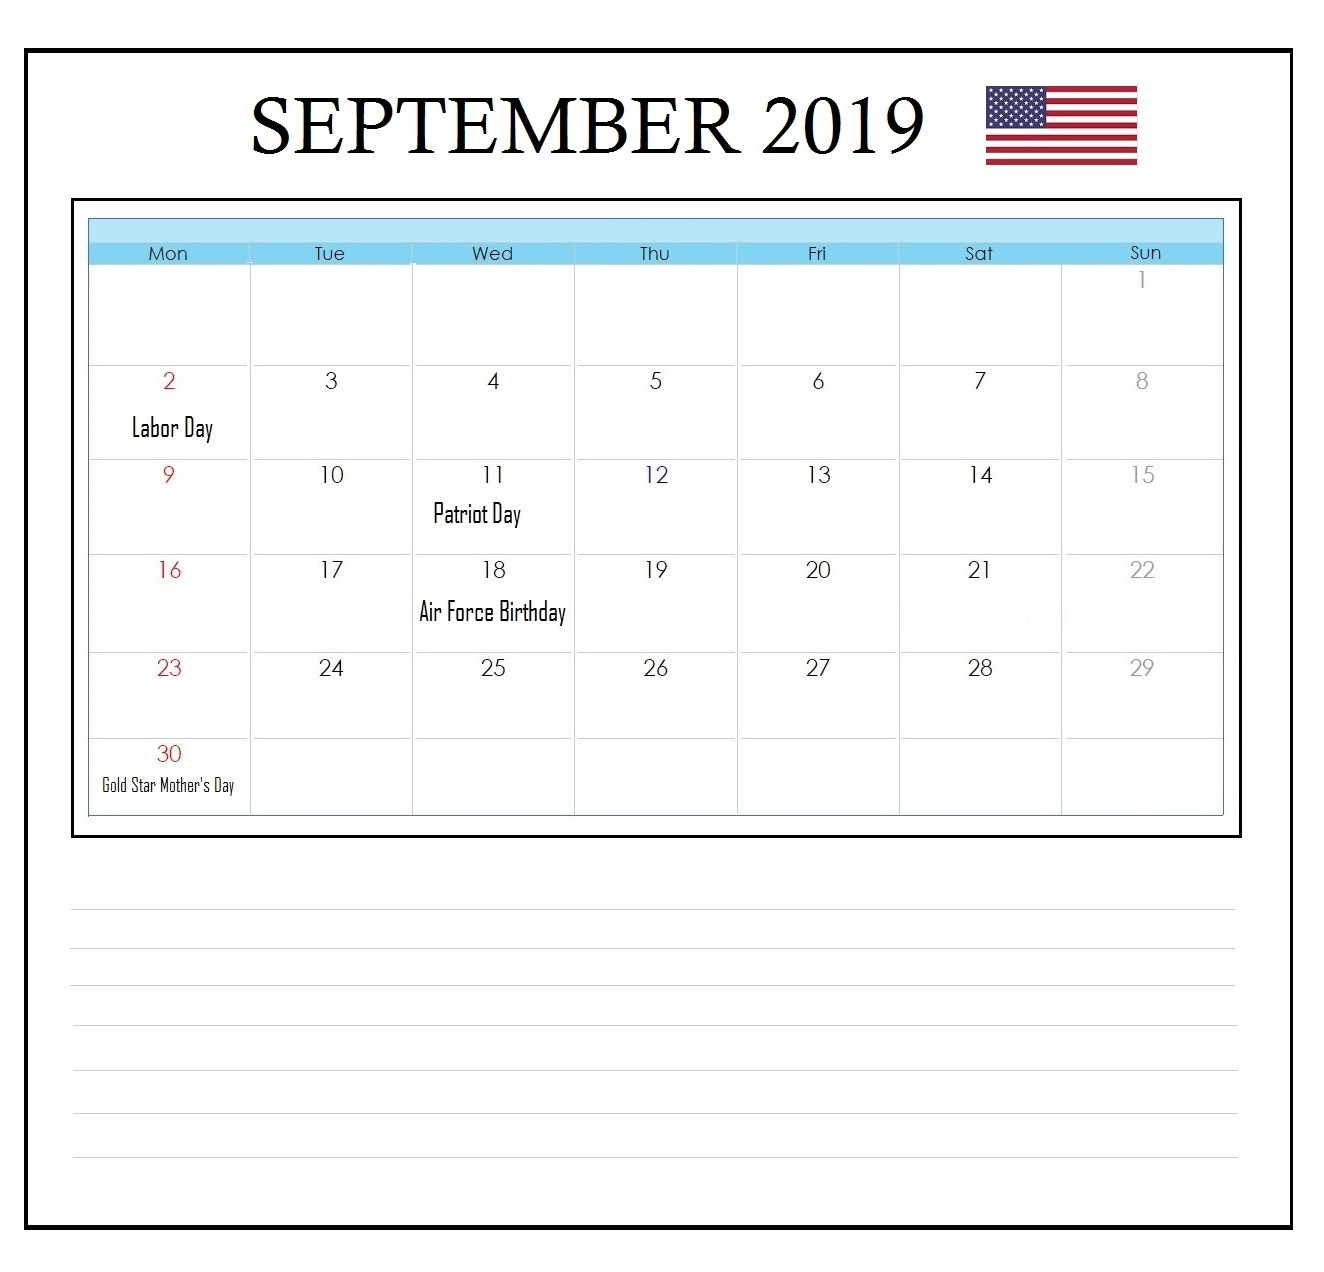 USA September 2019 Public Holidays Calendar